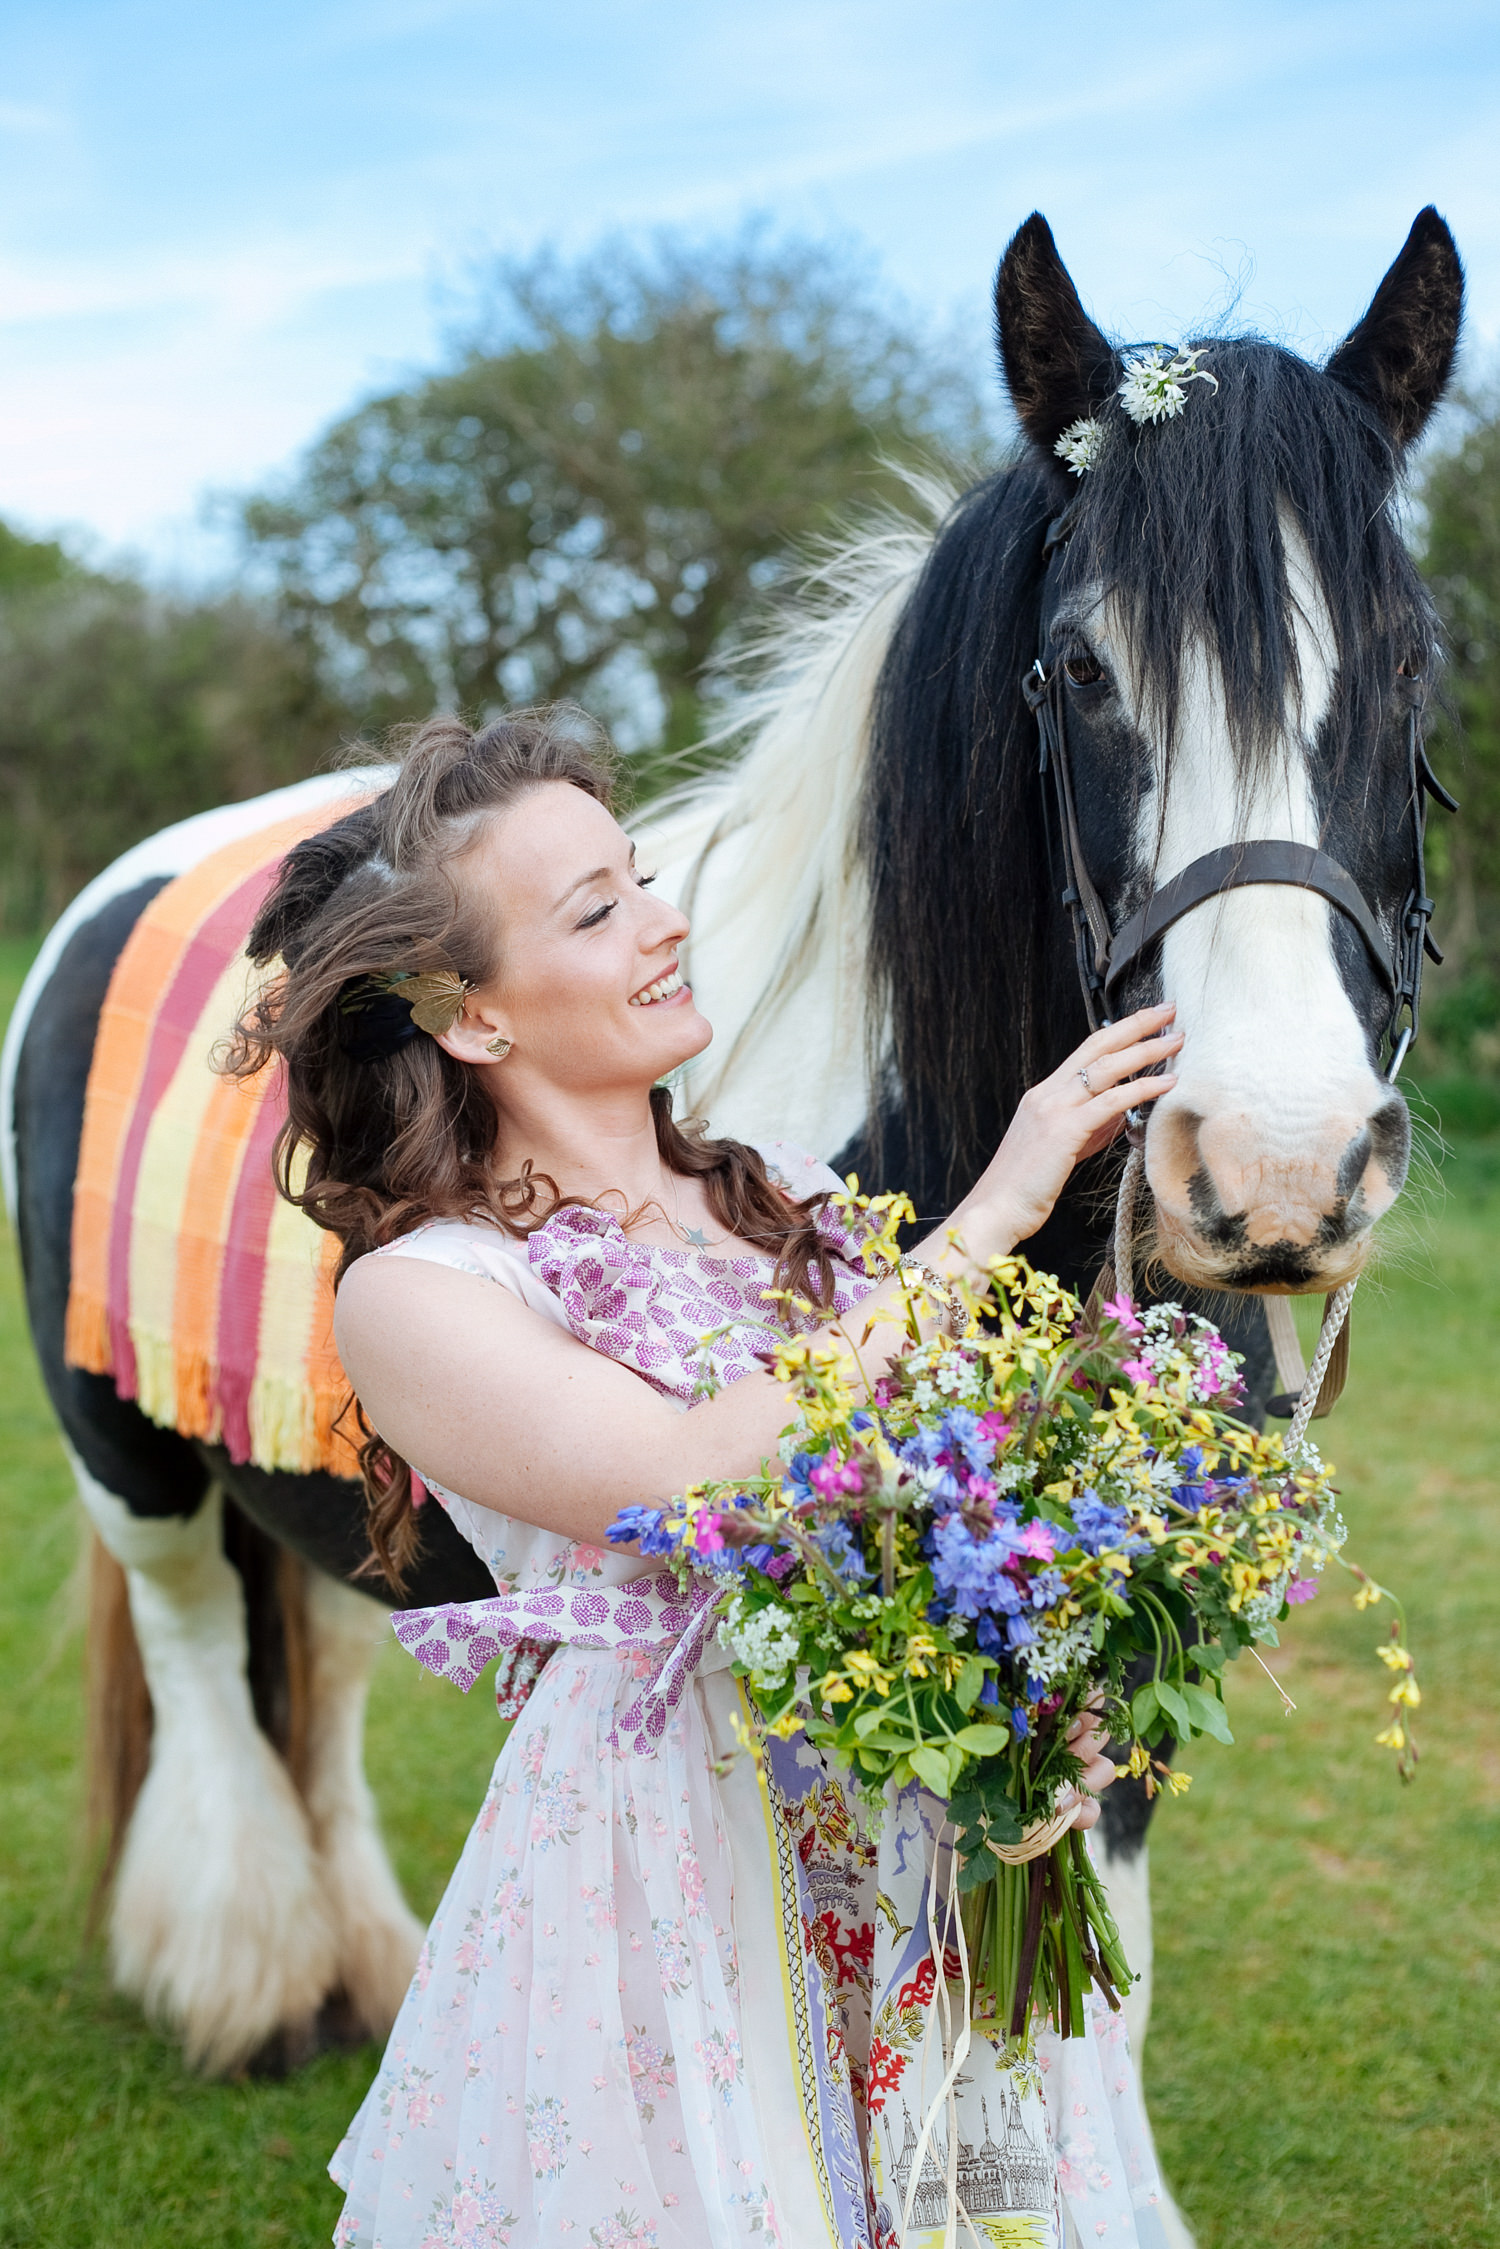 """Gypsy-inspired boho wedding shoot at Cornish Tipi Weddings. Dress by """"A Little Bird Said"""". Models Willow and Finn."""